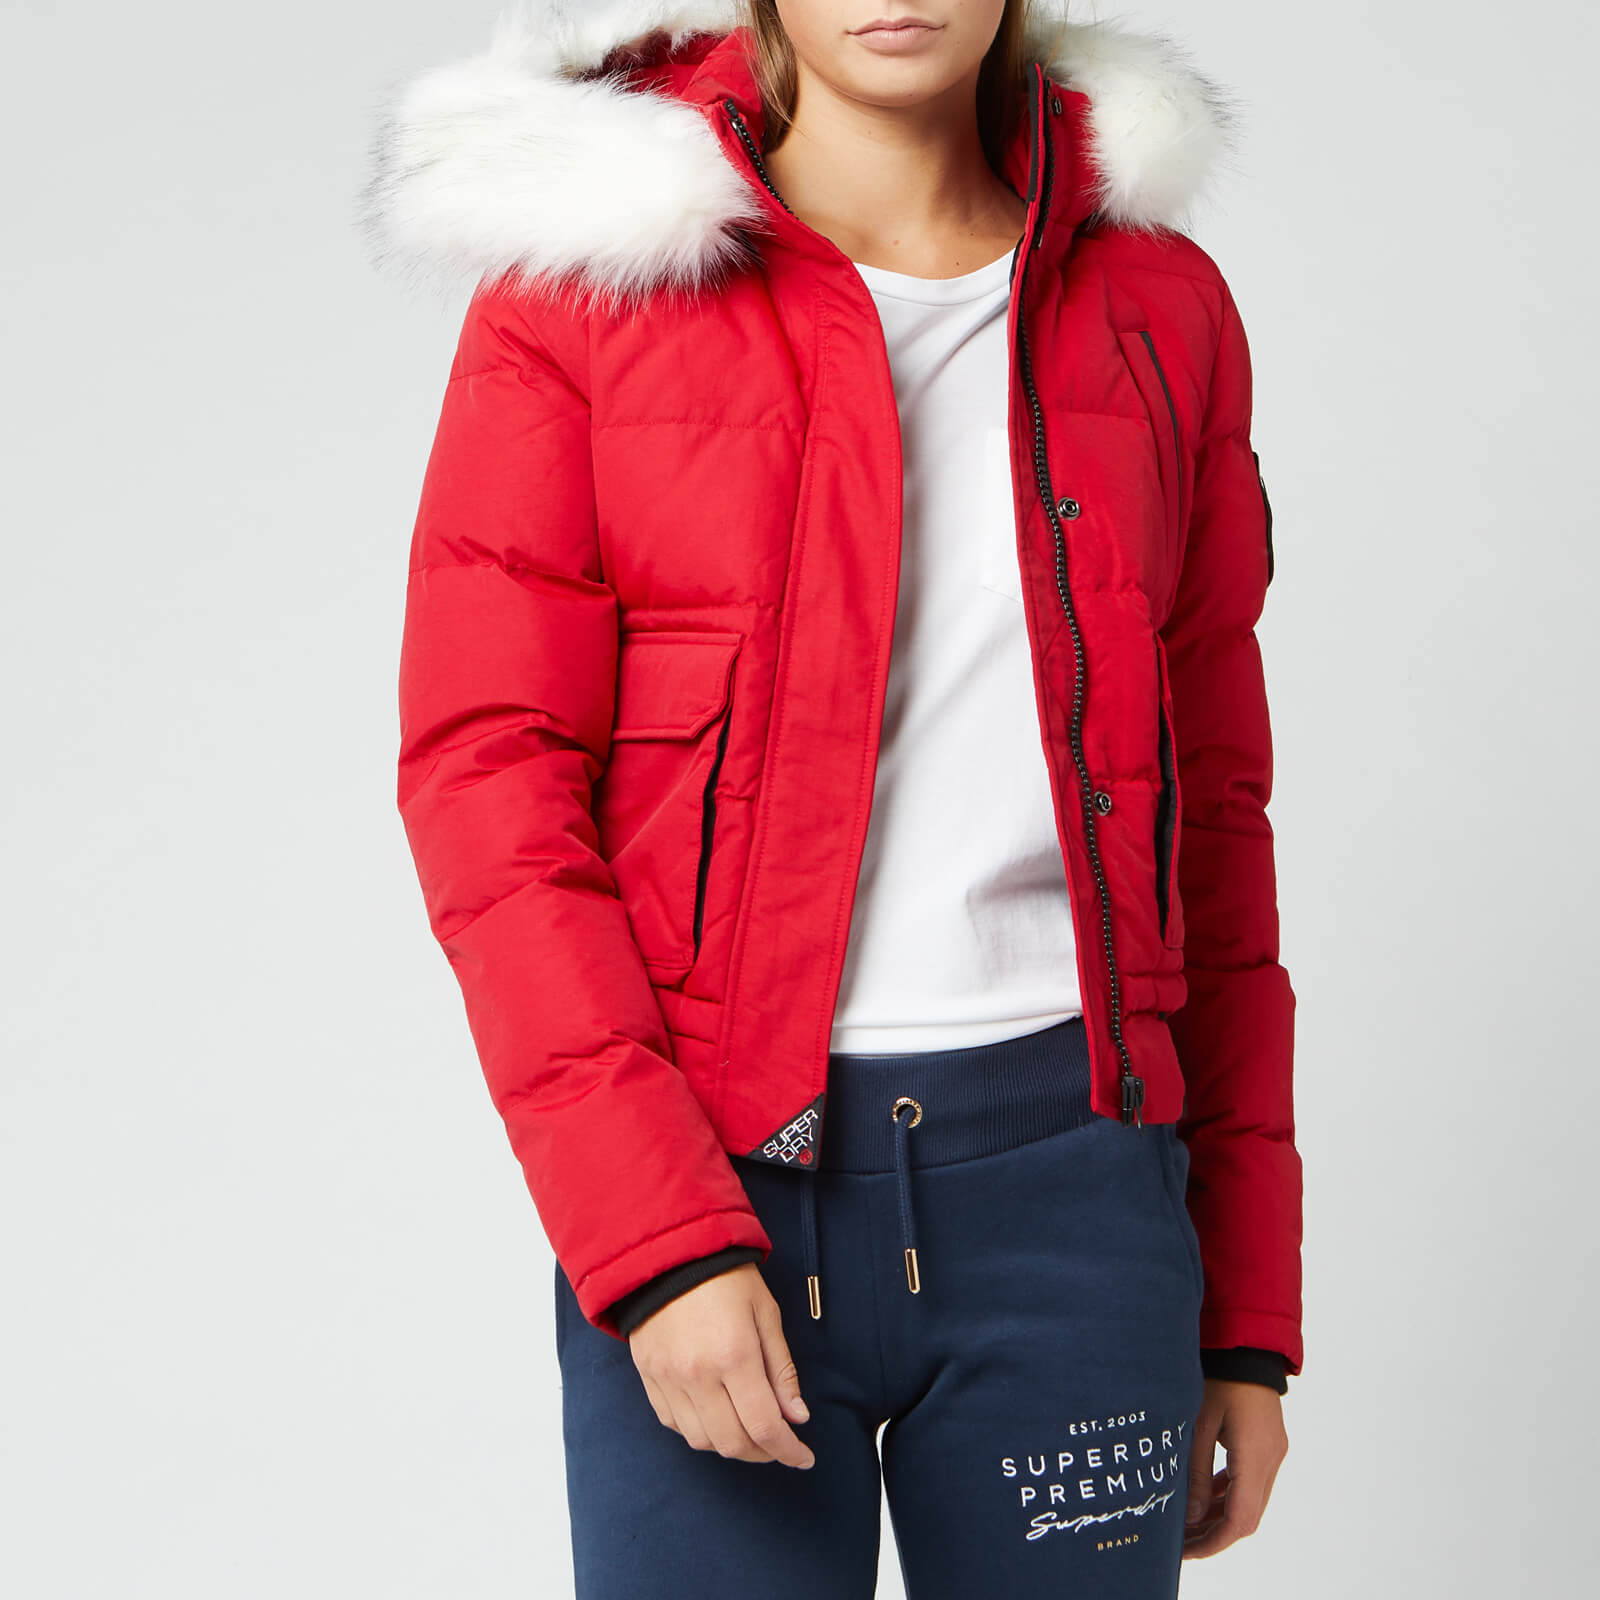 new season discount up to 60% many choices of Superdry Women's Everest Ella Bomber Jacket - Chili Pepper